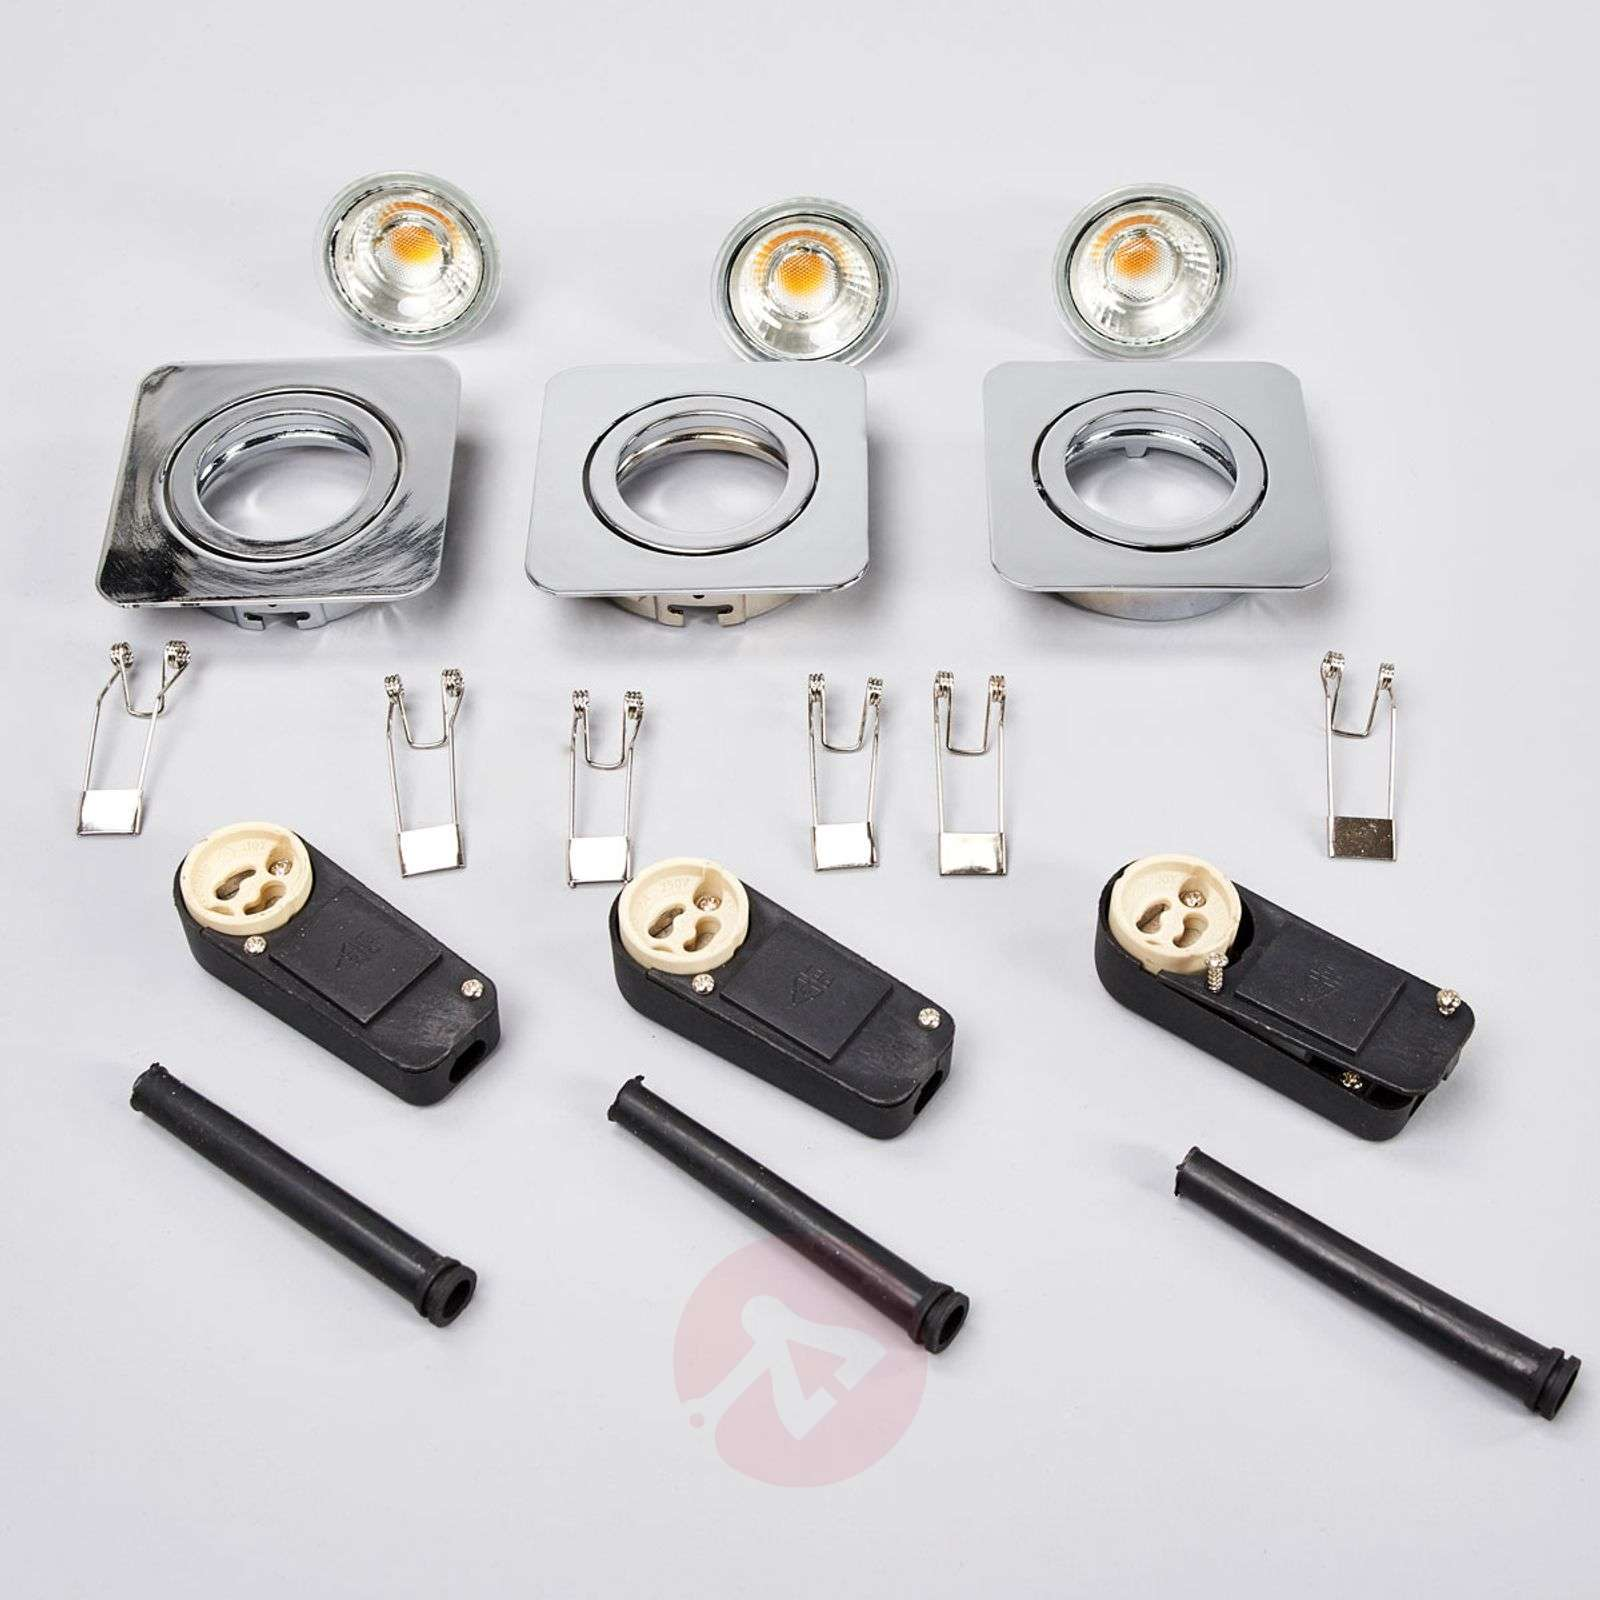 Spots LED encastrables Charna, lot de 3, chromé-9954037-02